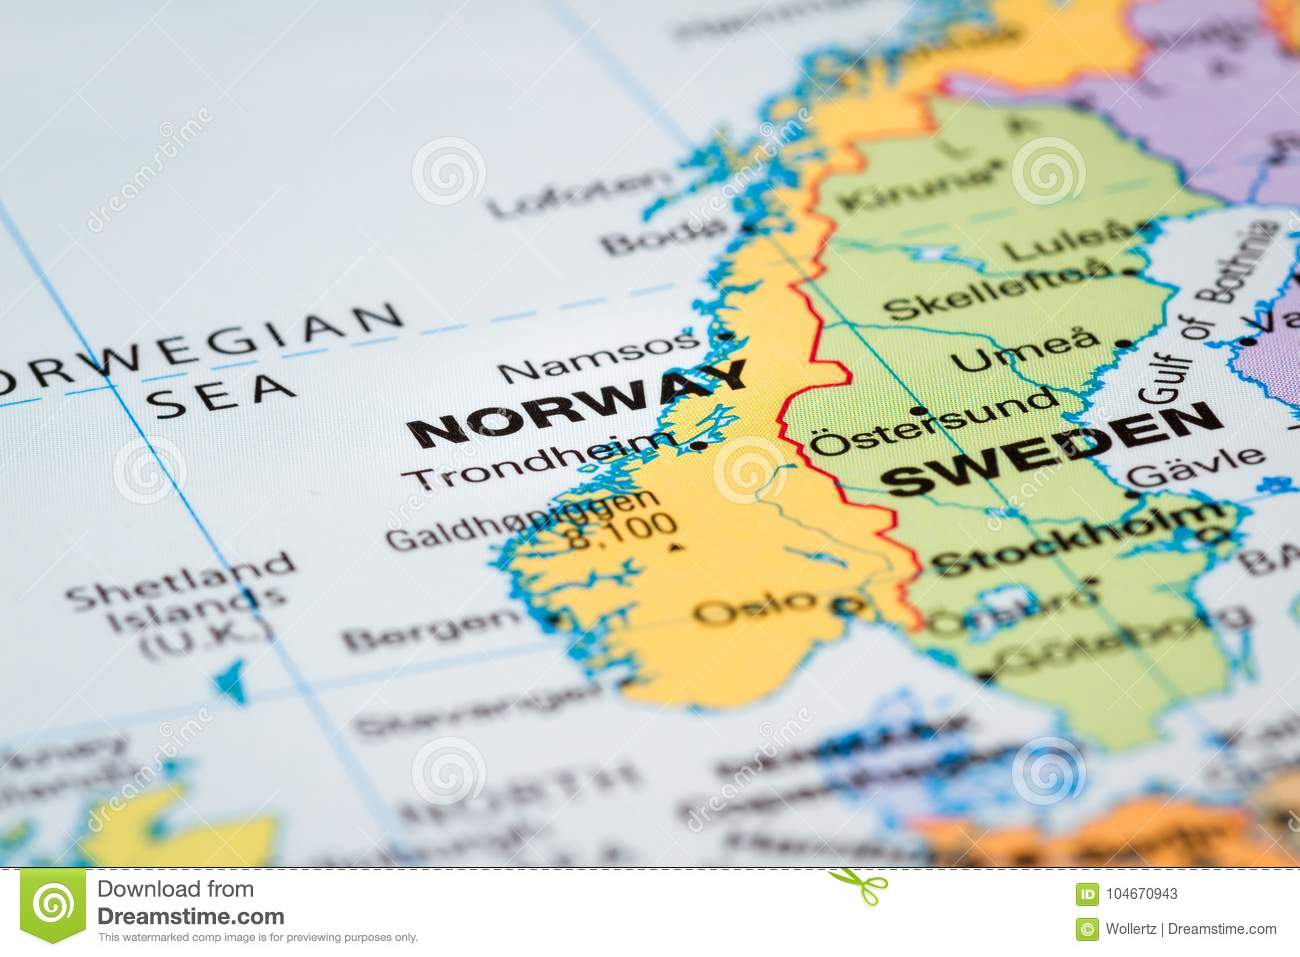 Scandinavia on a map stock image. Image of discover - 104670943